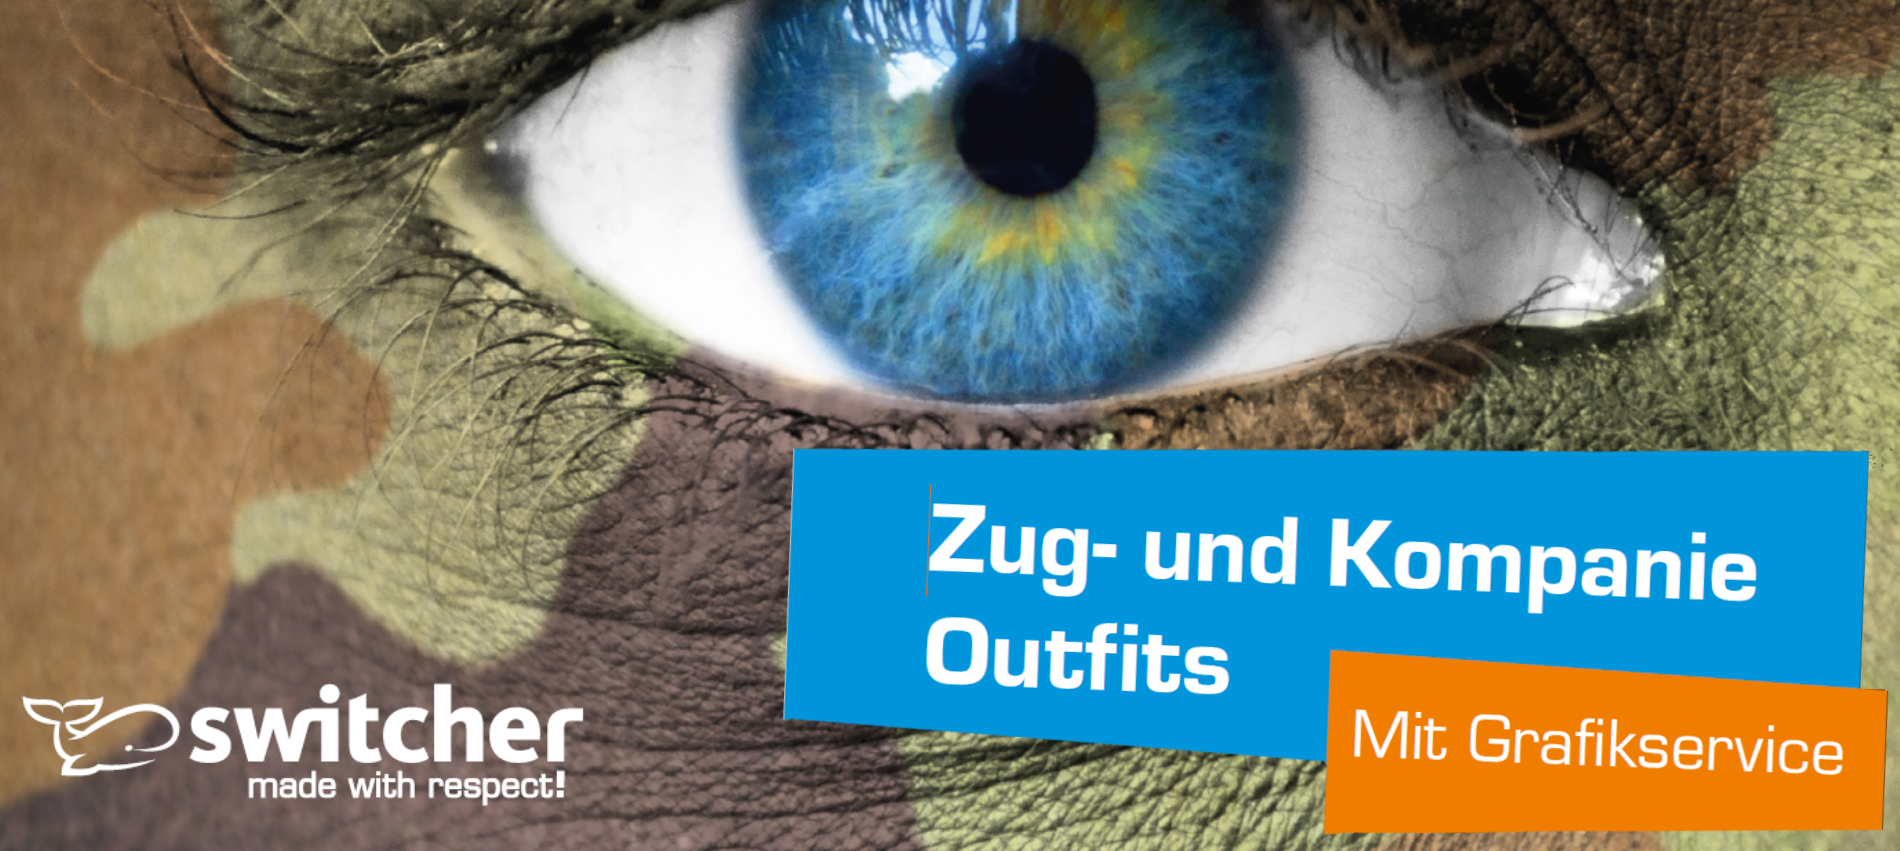 Zug und Kompanie Outfits made by werk5